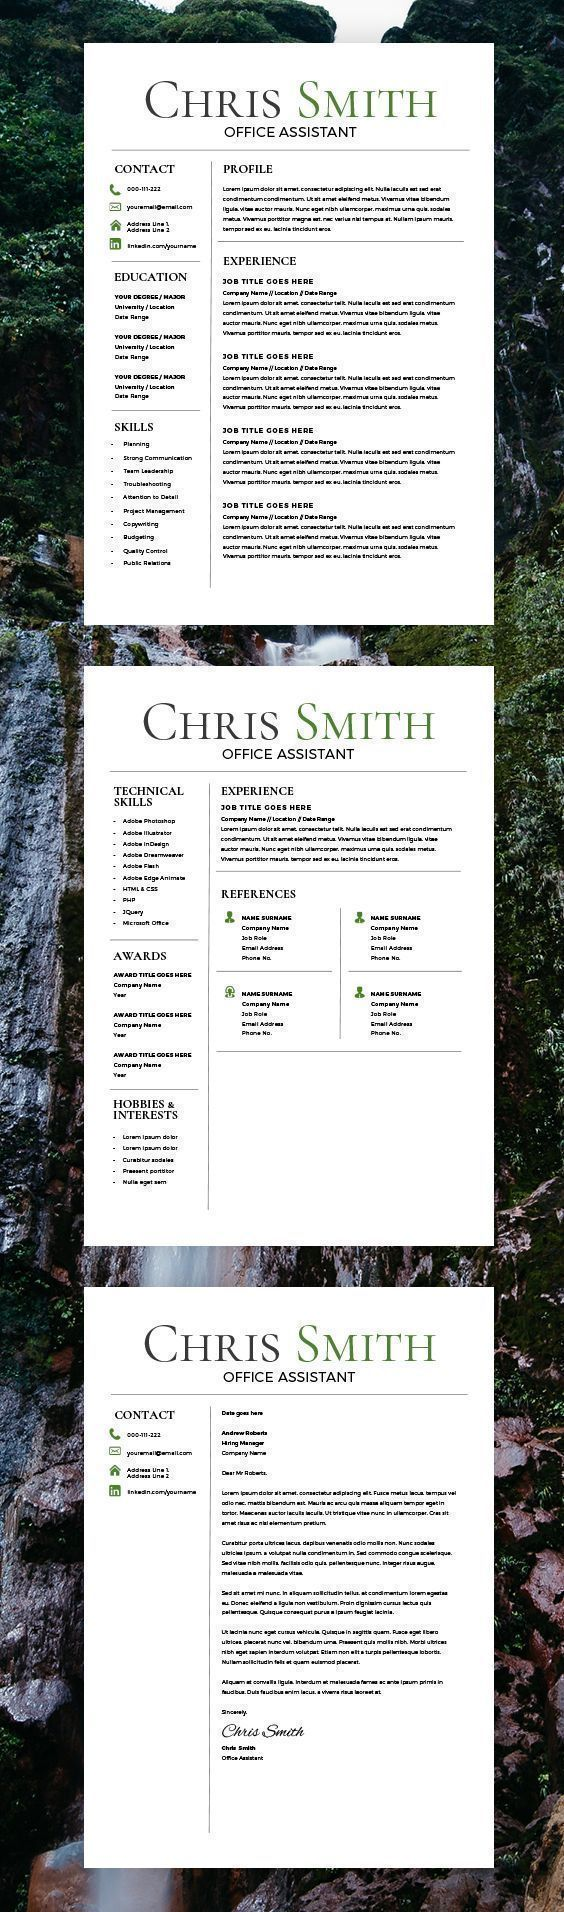 receptionist sample resume%0A Trending Resume Template  CV Template  Free Cover Letter  MS Word Mac PC